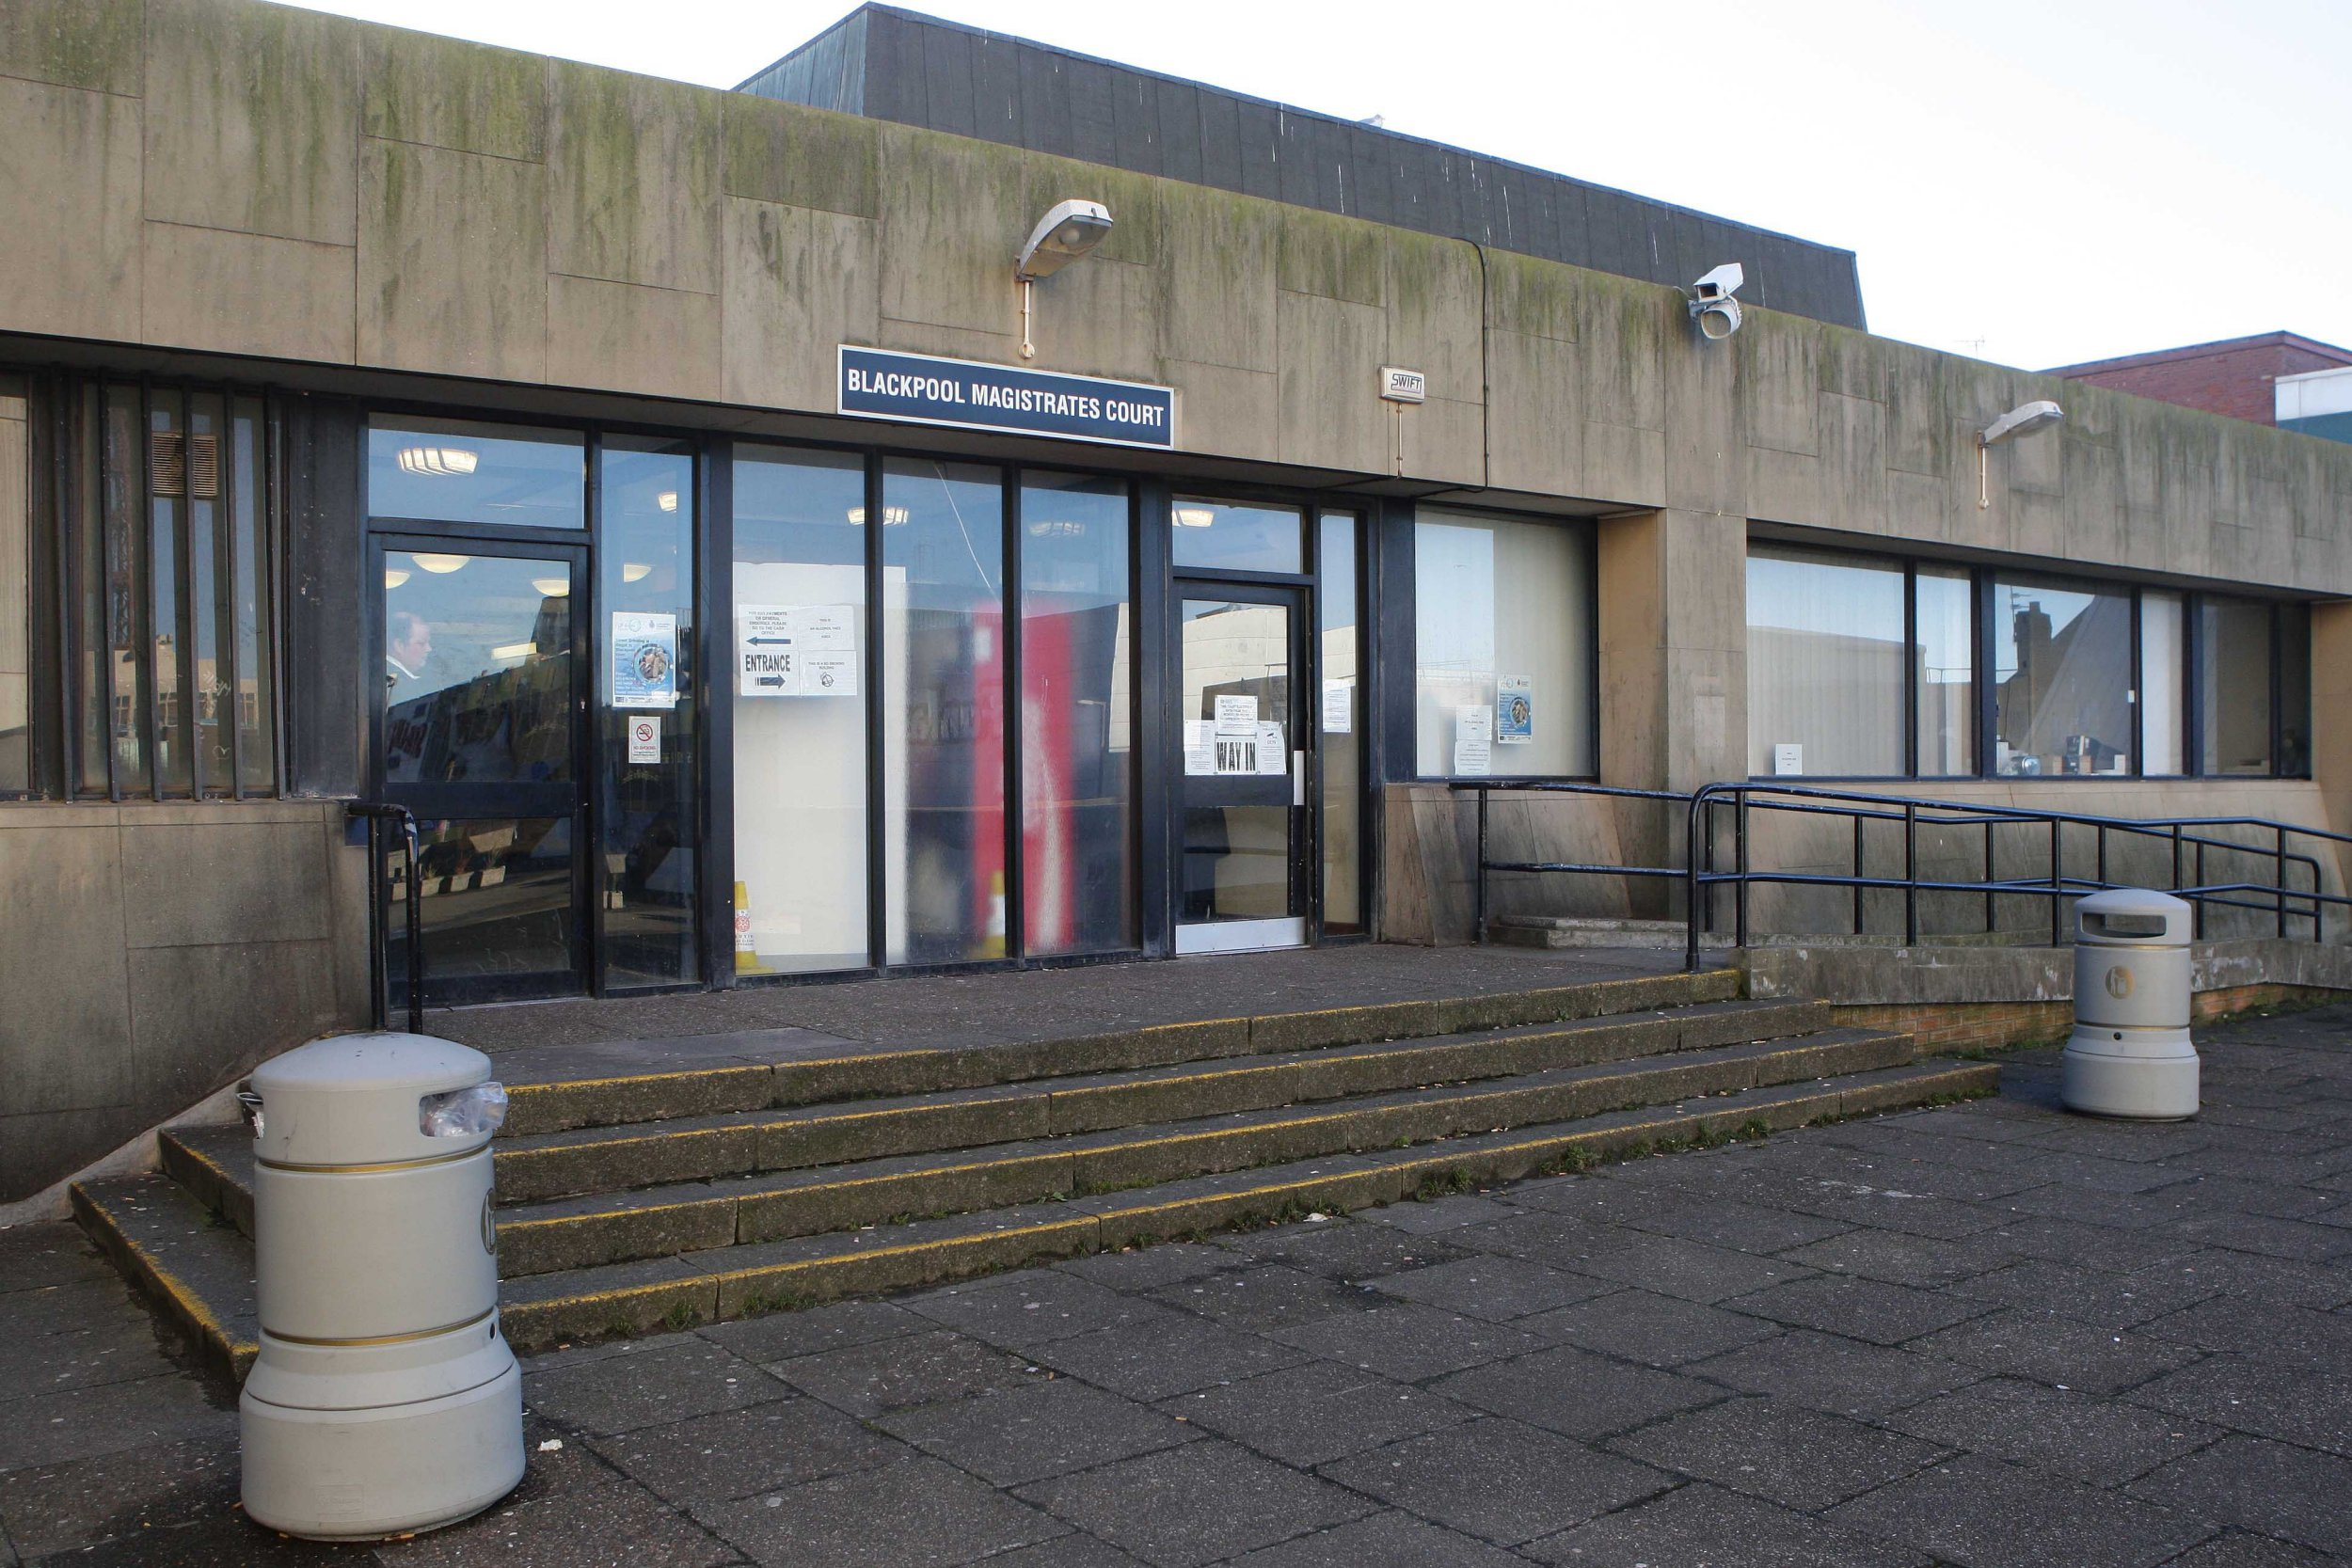 A general view of Blackpool Magistrates Court.